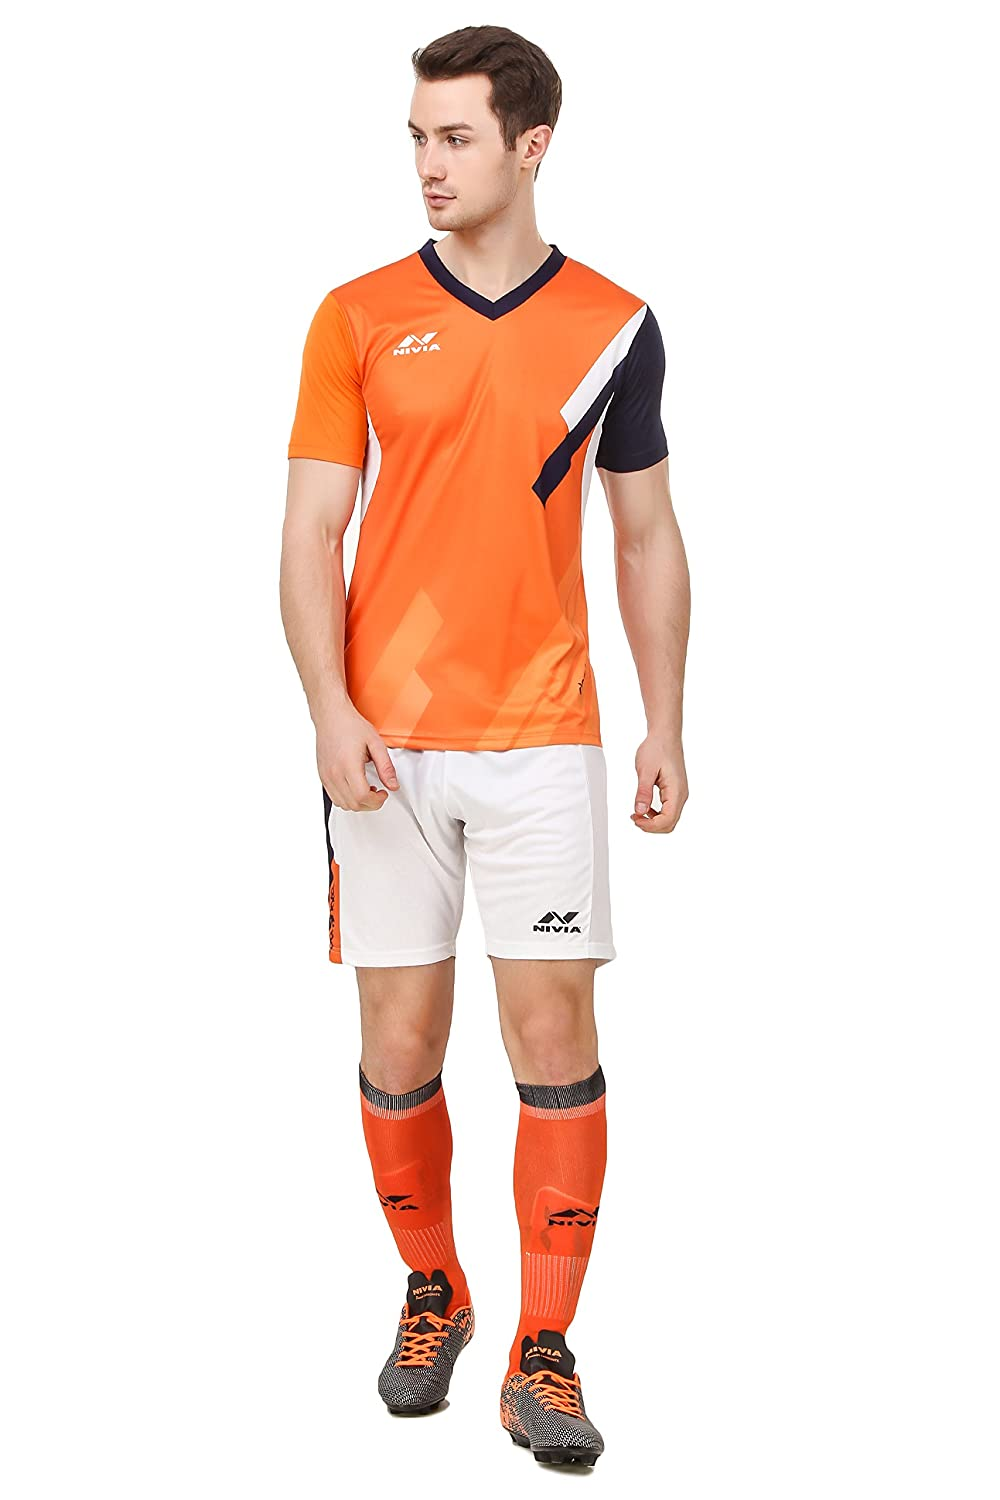 Buy Nivia Polyester Radar Football Jersey Set Online at Low Prices ... 2bbfb2b12